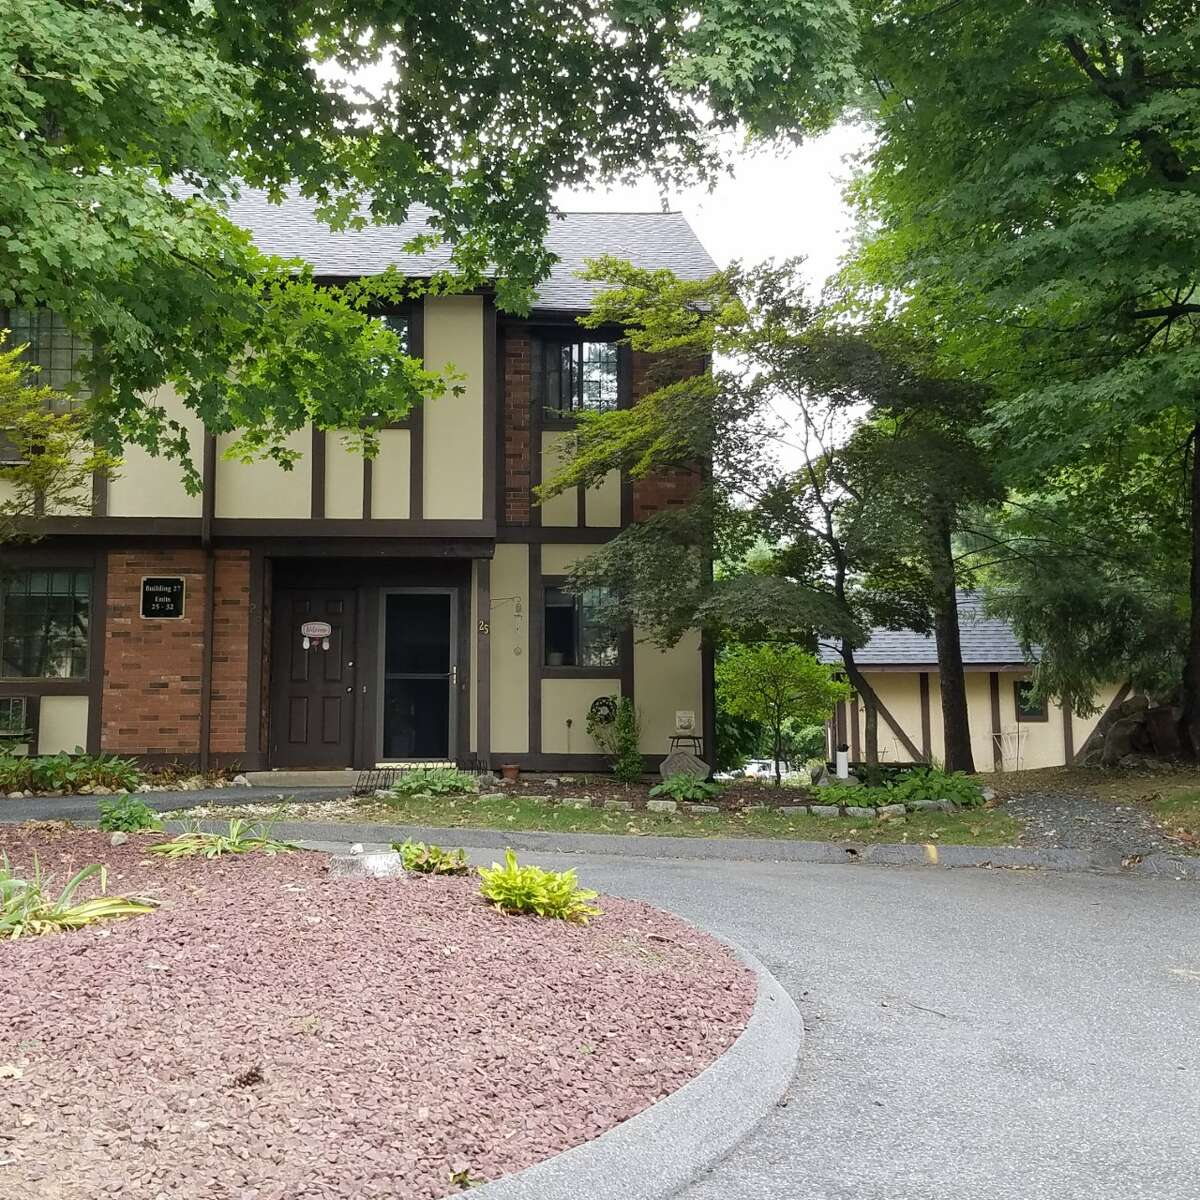 ADDRESS: 25 Canterbury Court, Brookfield, CT 06804 PUBLIC AUCTION: November 3, 2018 FORECLOSURE SALE: Residential Find out more